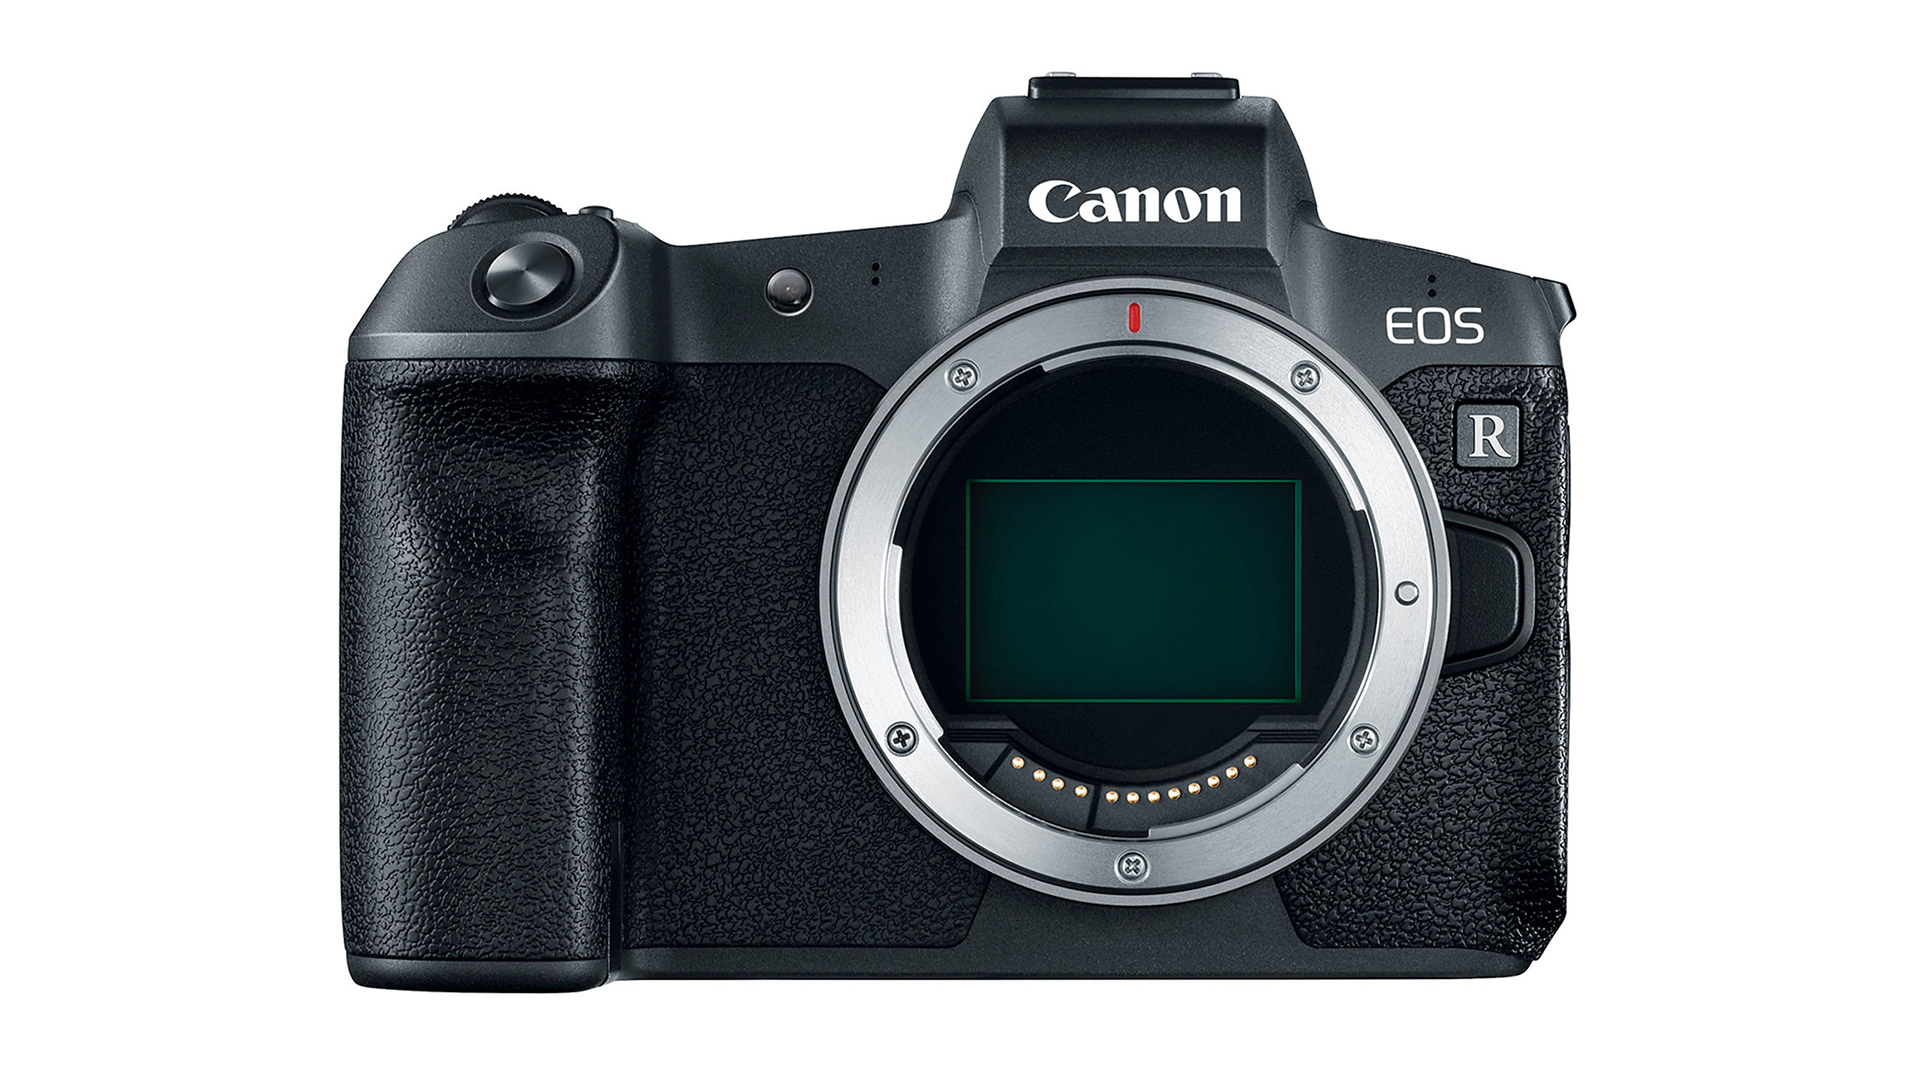 Canon's EOS R provoked a lot of debate over its sensor cropping when shooting video.